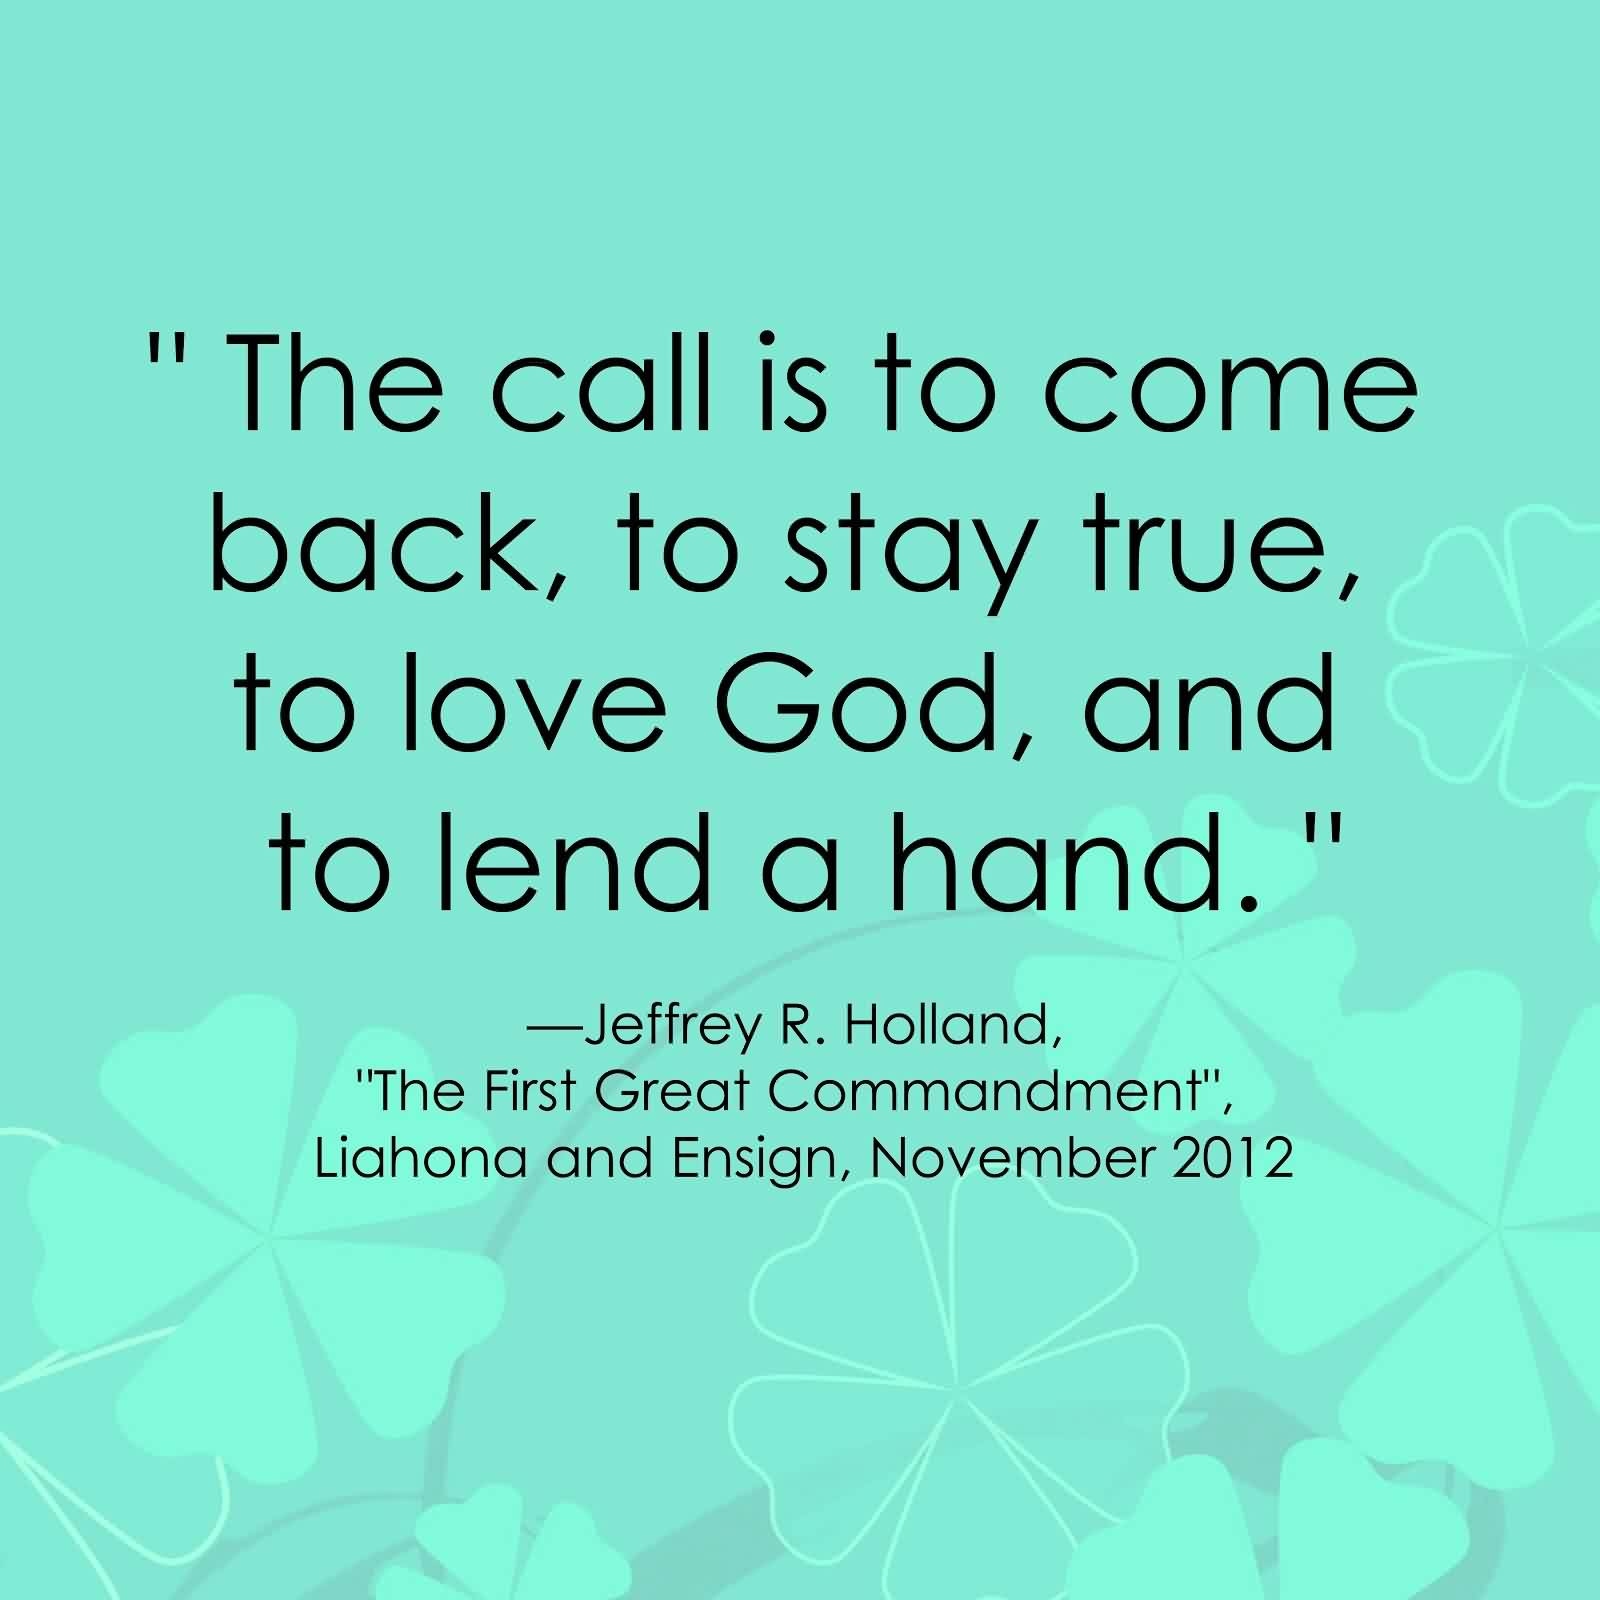 Popular Charity Quote By Jeffery R. Holland~ The call is to come back , to stay true,to love god,and to lend a hand.